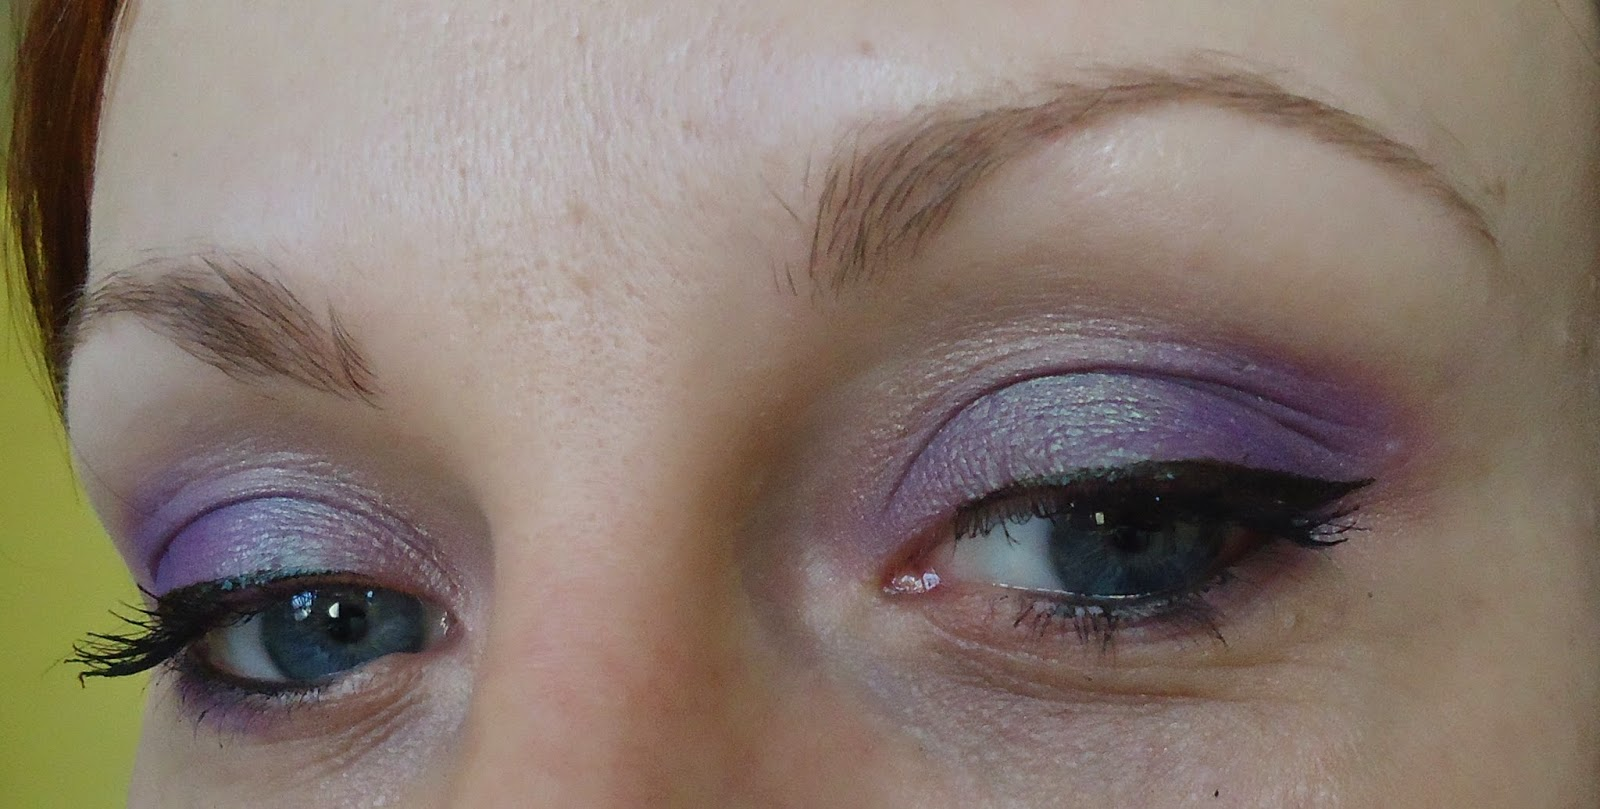 Fard à paupière Love Potion n°9 Alchemy lime crime